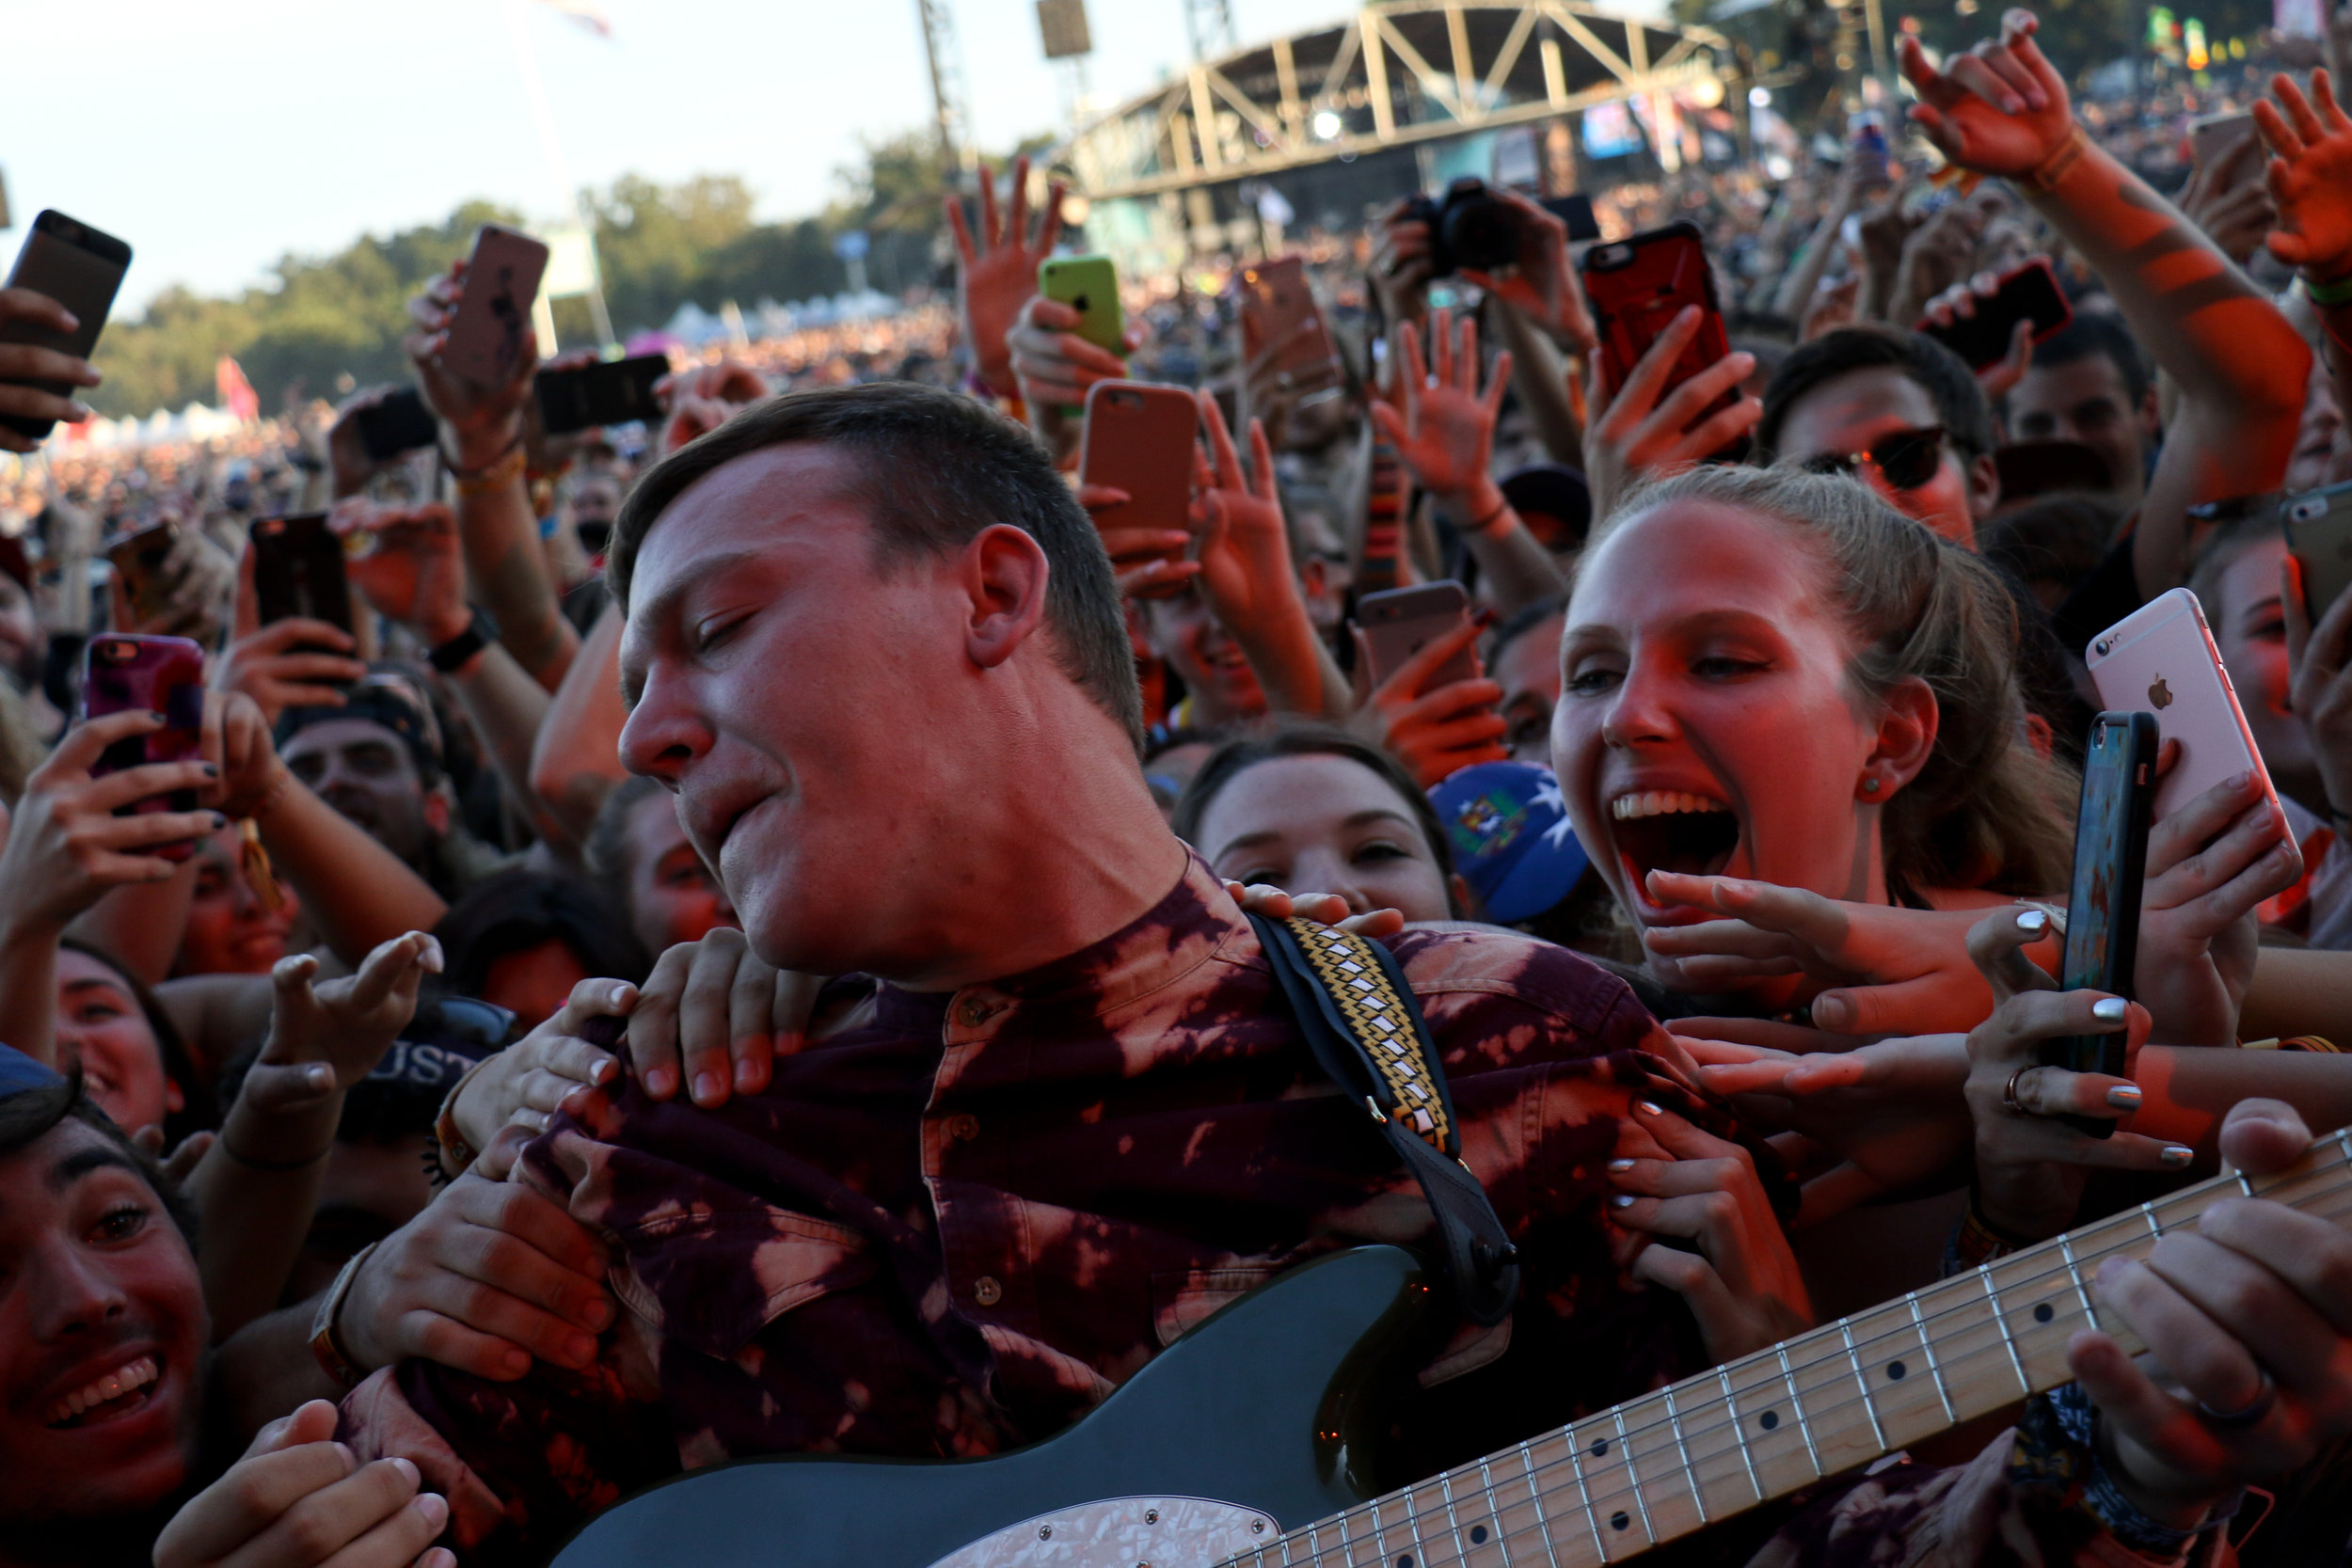 Brad Shultz of Cage The Elephant takes his guitar out to play with the fans.